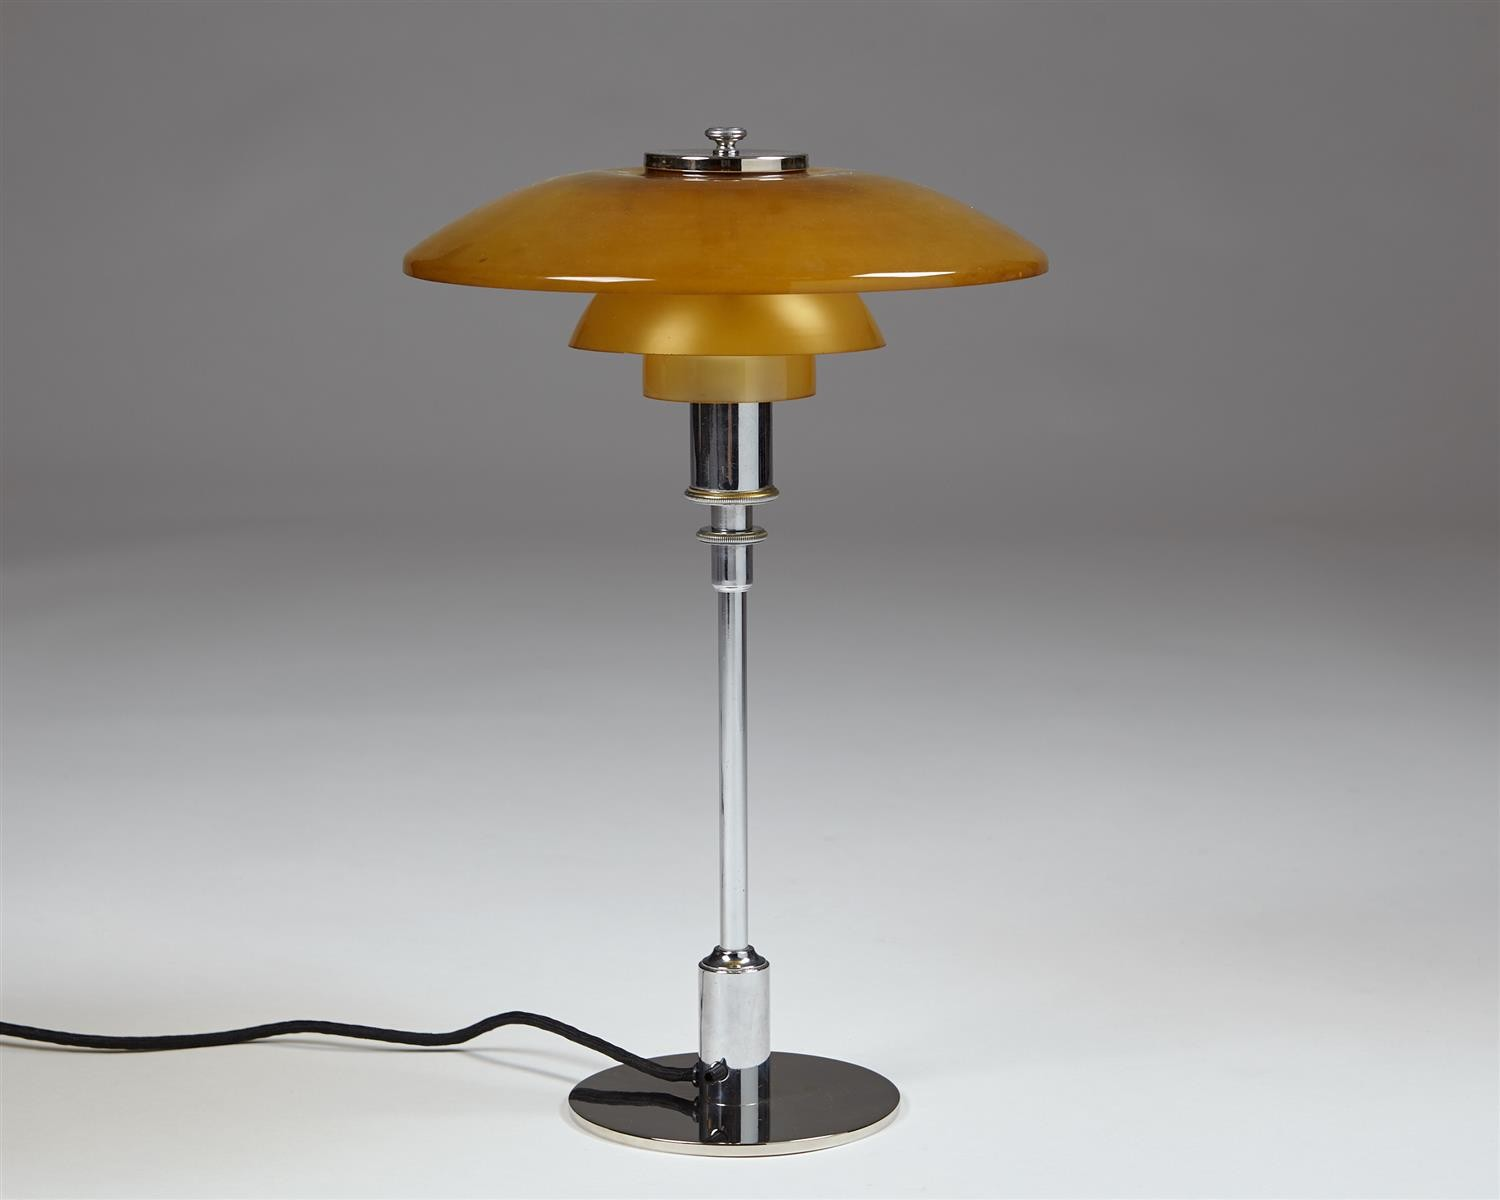 Louis Poulsen Ph 3 2 Table Lamp Ph 3 2 Designed By Poul Henningsen For Louis Poulsen